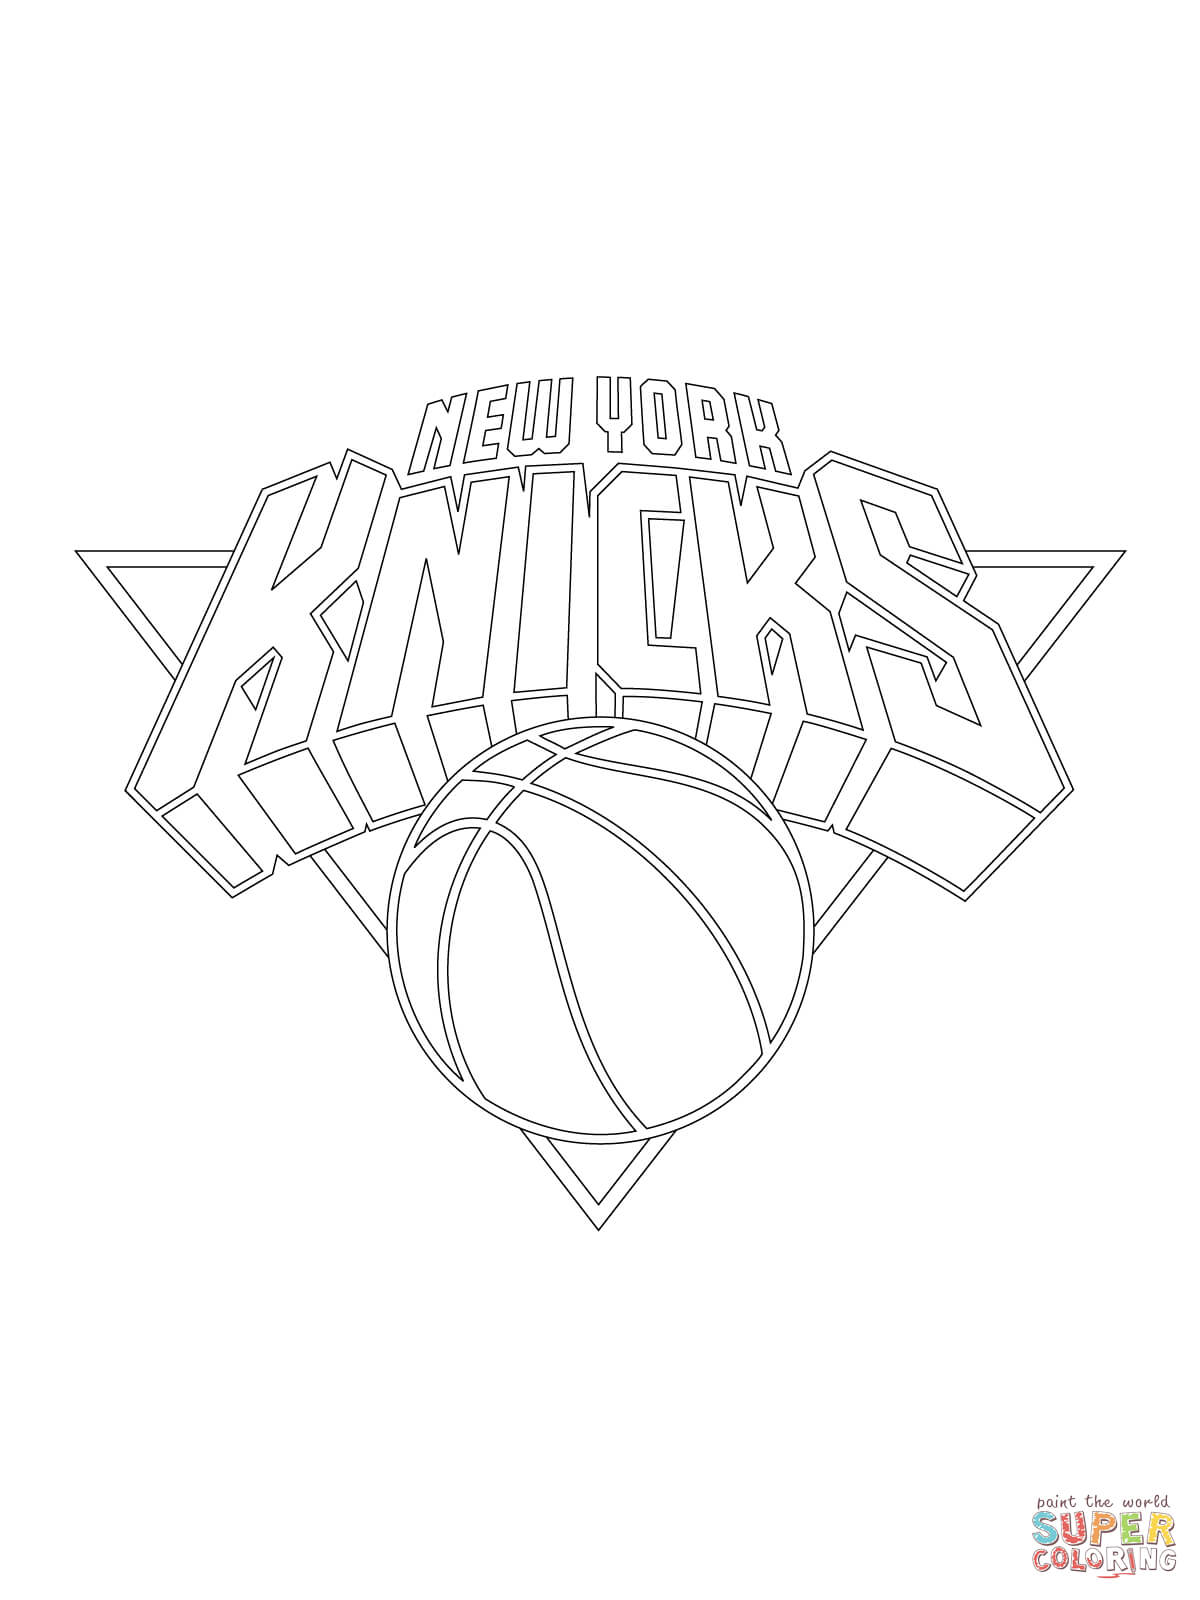 1200x1600 New York Knicks Logo Coloring Page Free Printable Coloring Pages